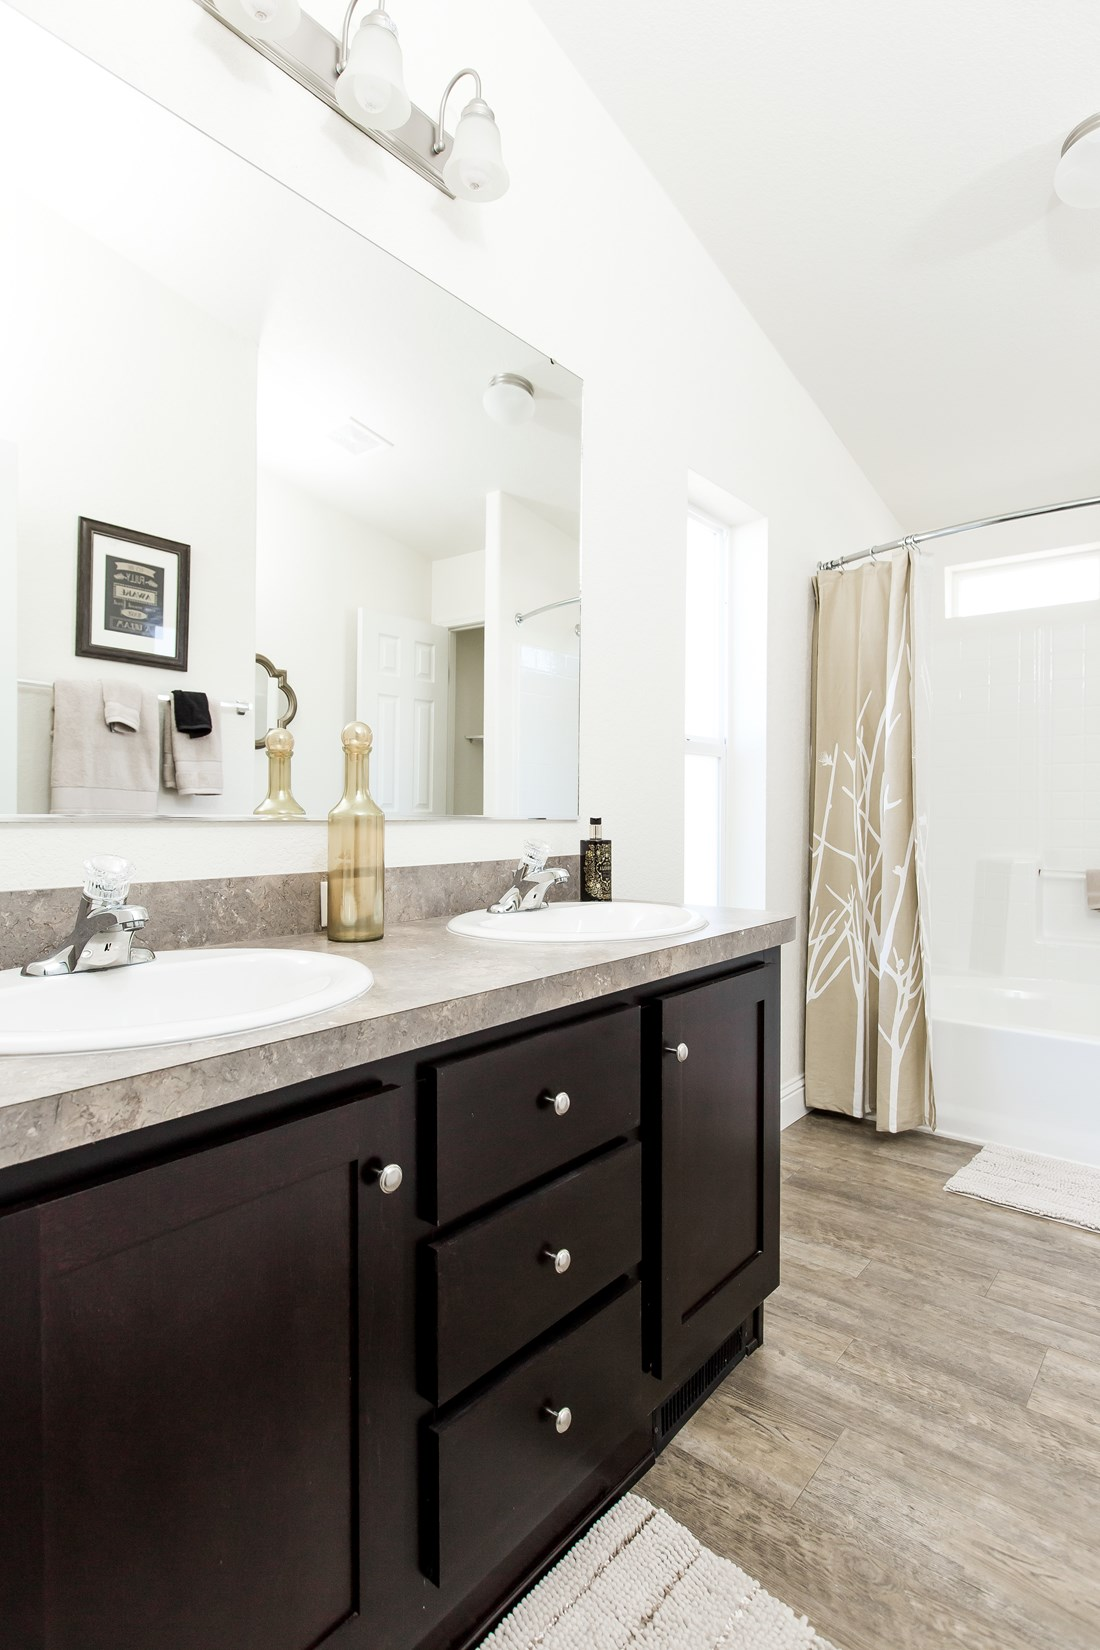 The CK522F Master Bathroom. This Manufactured Mobile Home features 4 bedrooms and 2 baths.